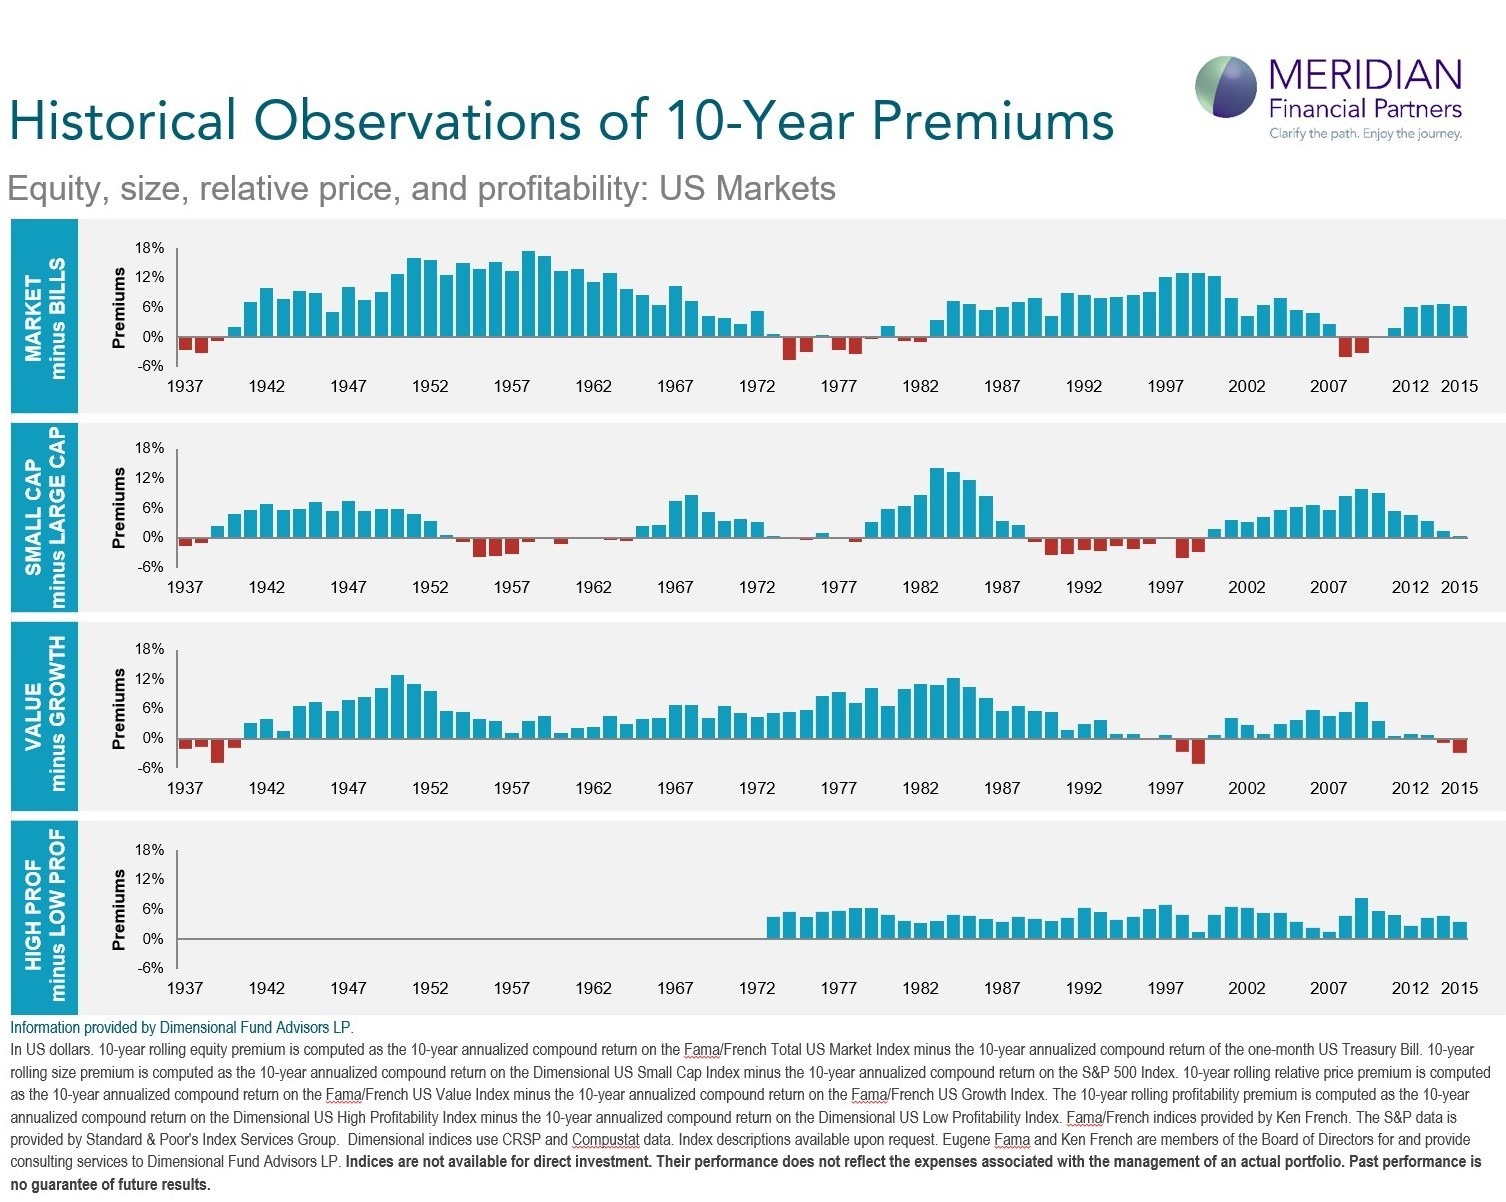 Historical observations of 10 year premiums